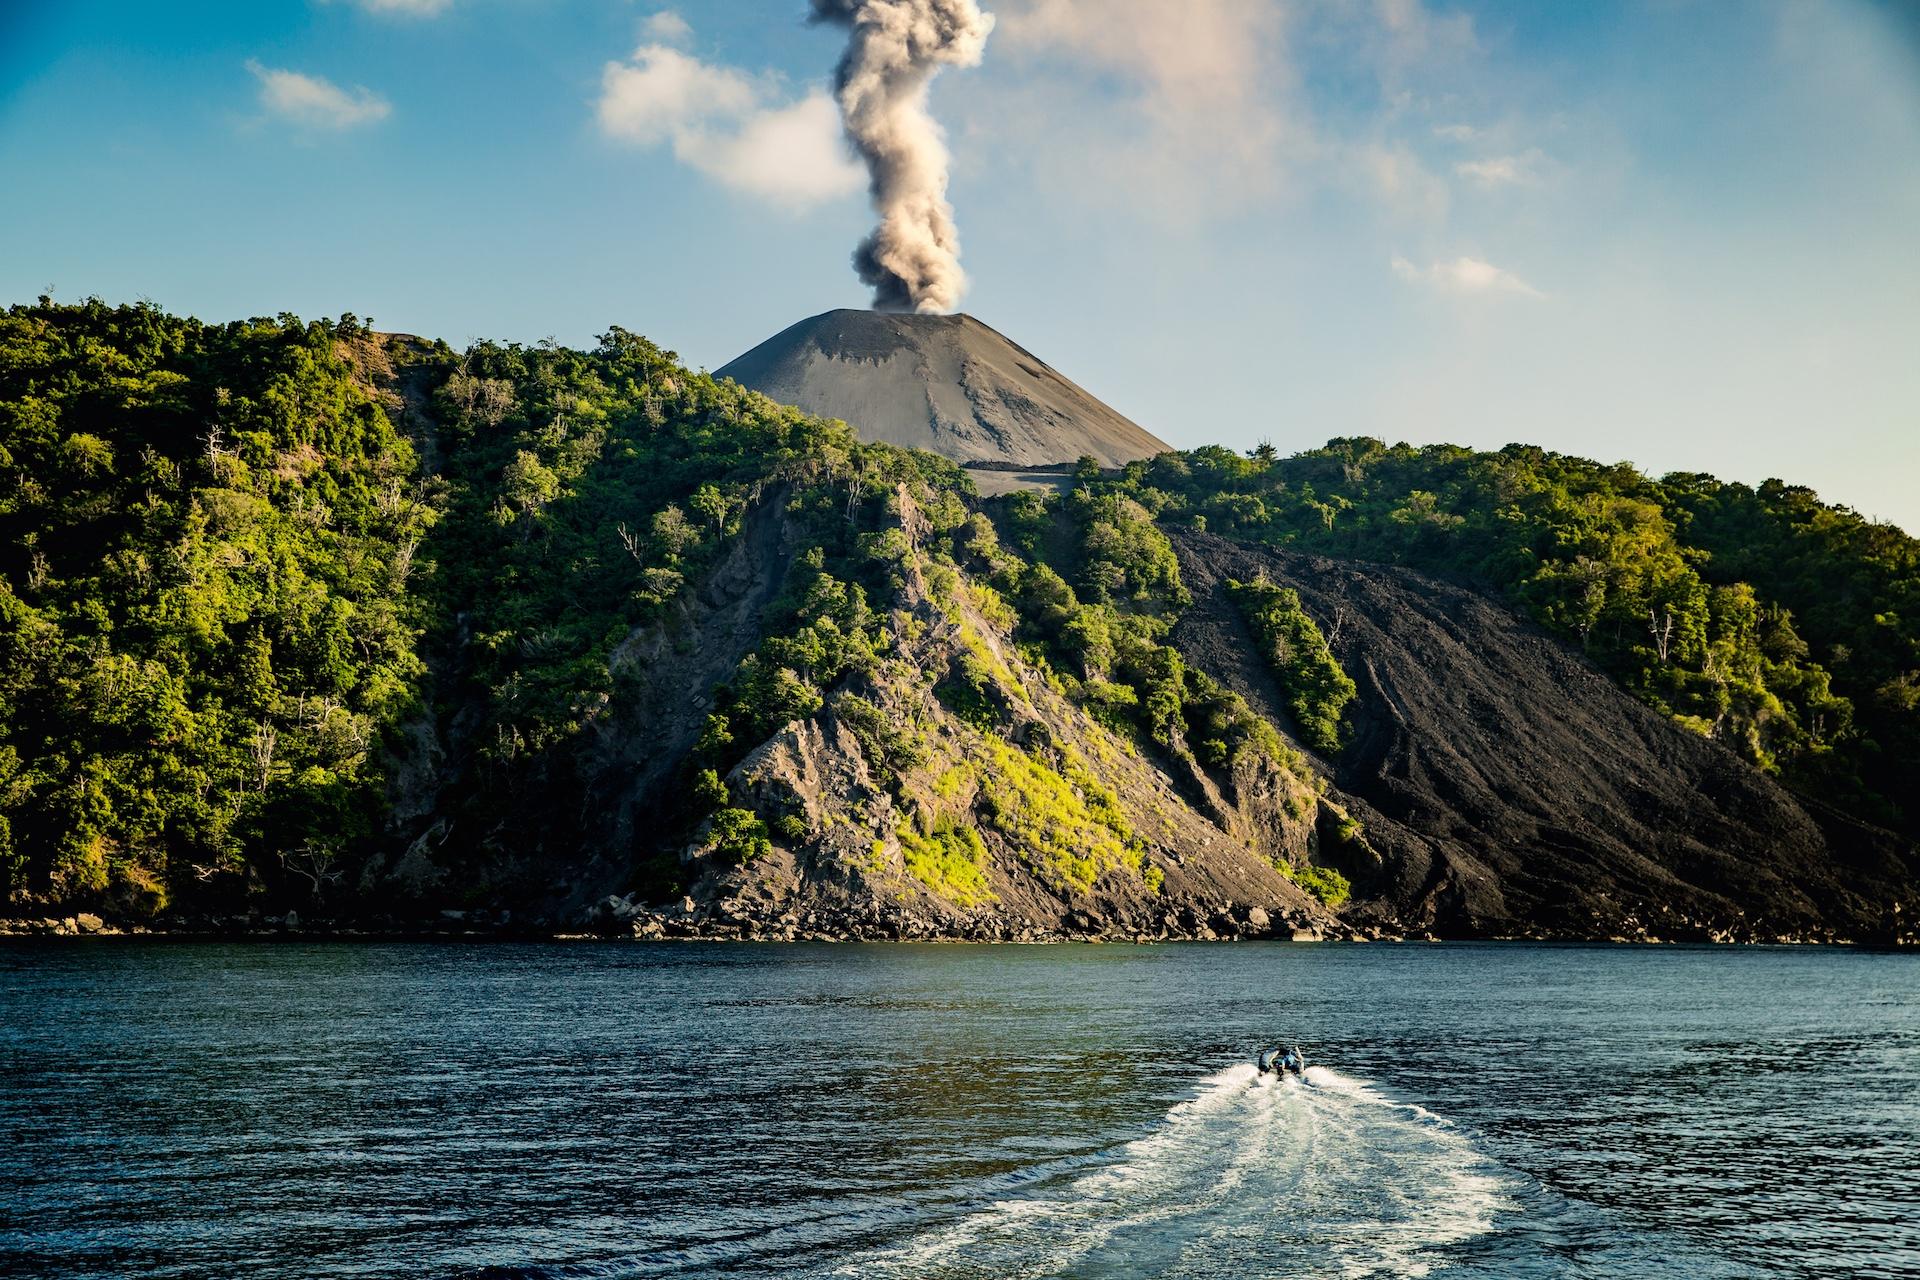 To dive at Barren Island, travel there on a fast boat from a nearby island for a day trip, or visit on a liveaboard ship that travels there for 2-4 days. Photo: Bhushan Bagadia Positives.